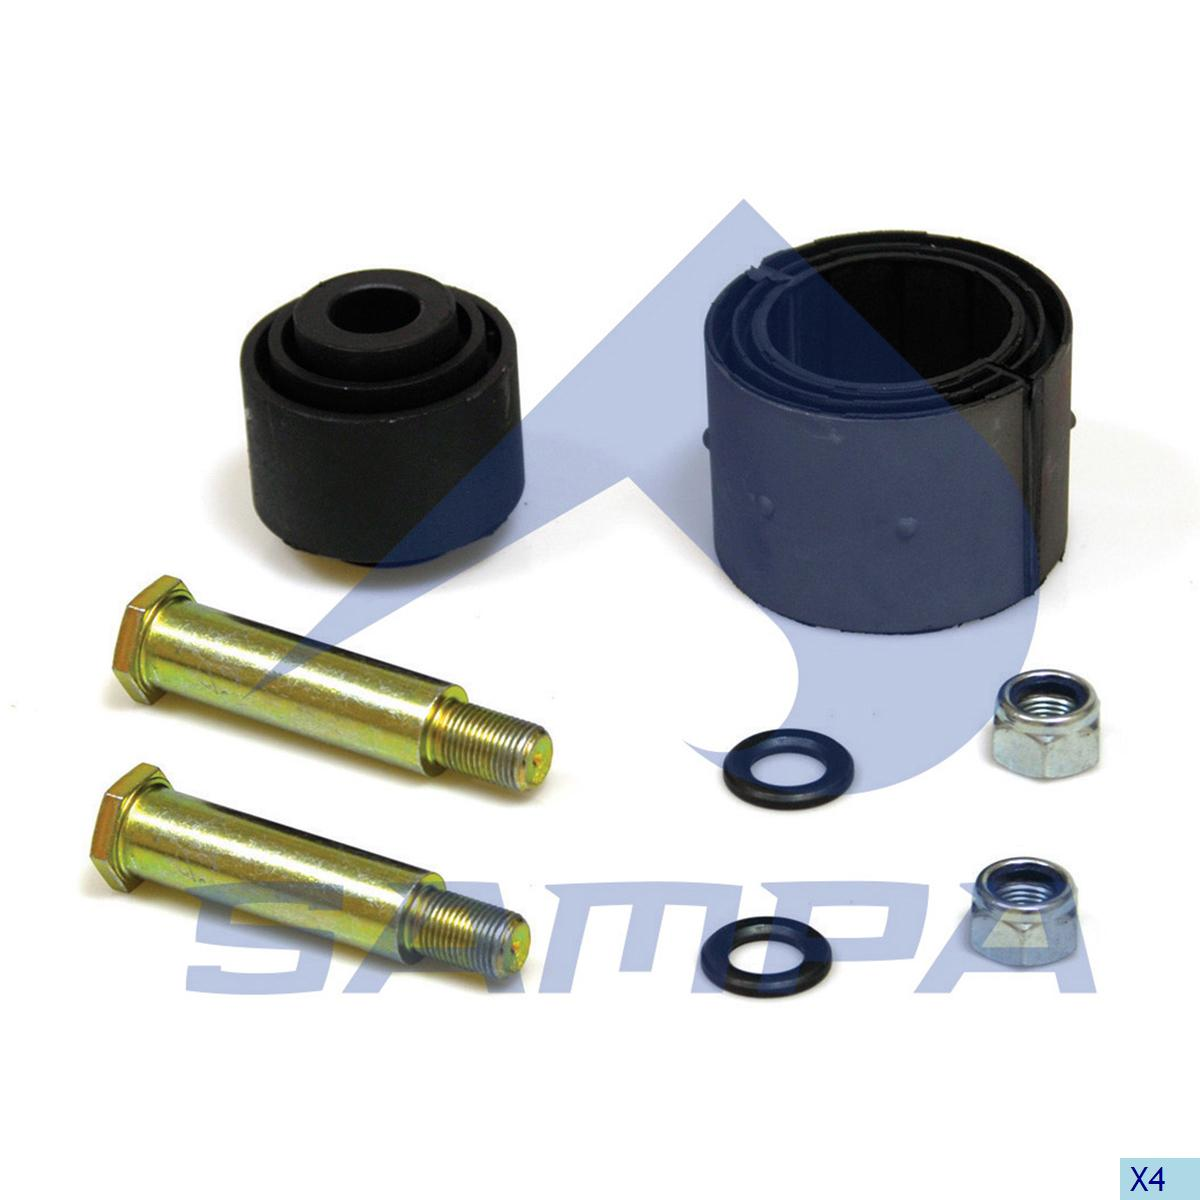 Repair Kit, Stabilizer Bar, Man, Suspension